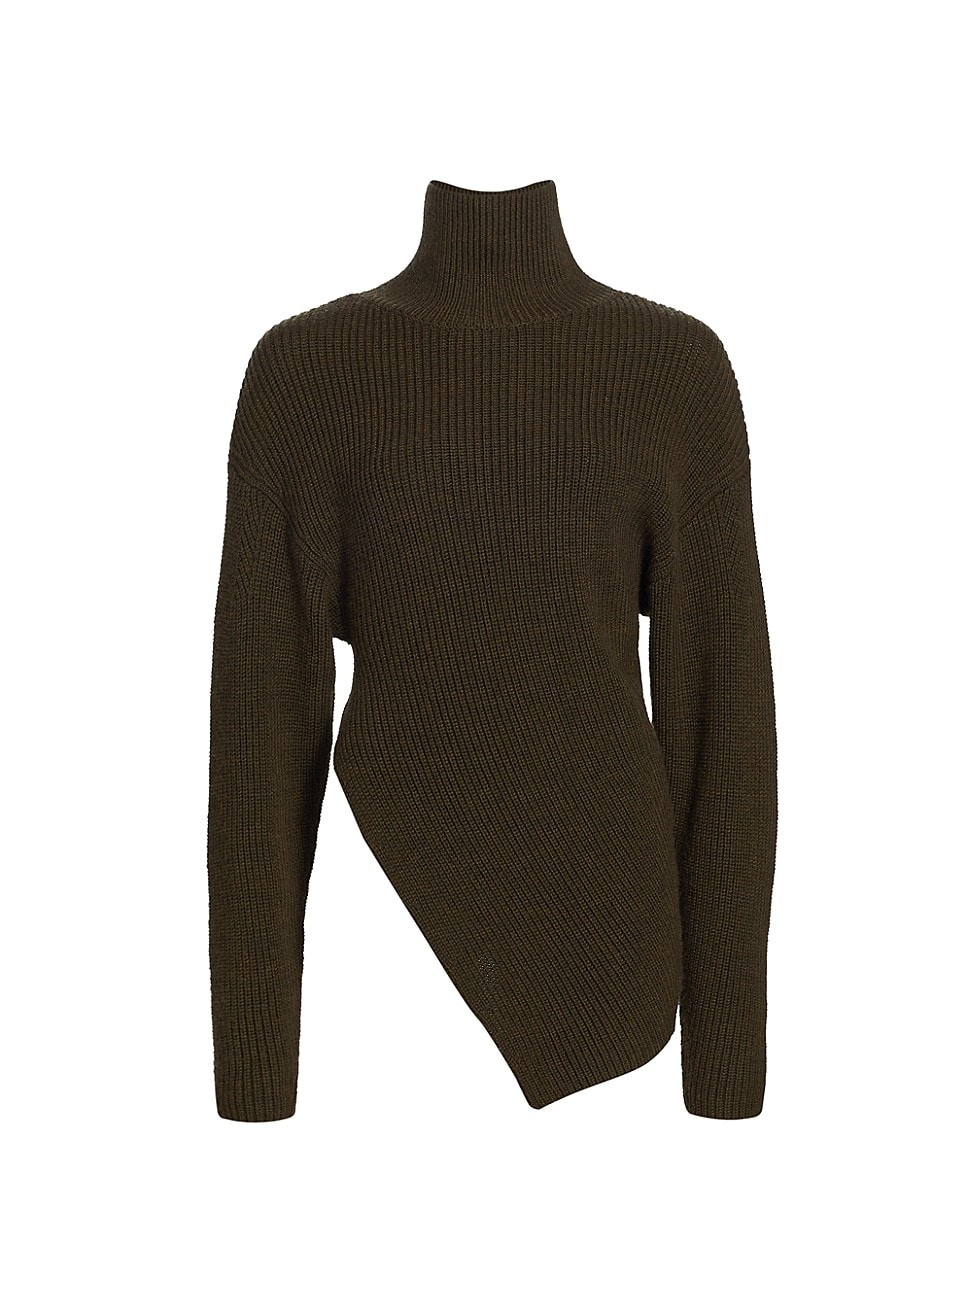 Proenza Schouler WOMEN'S MERINO WOOL ASYMMETRIC TURTLENECK SWEATER - FATIGUE - SIZE MEDIUM